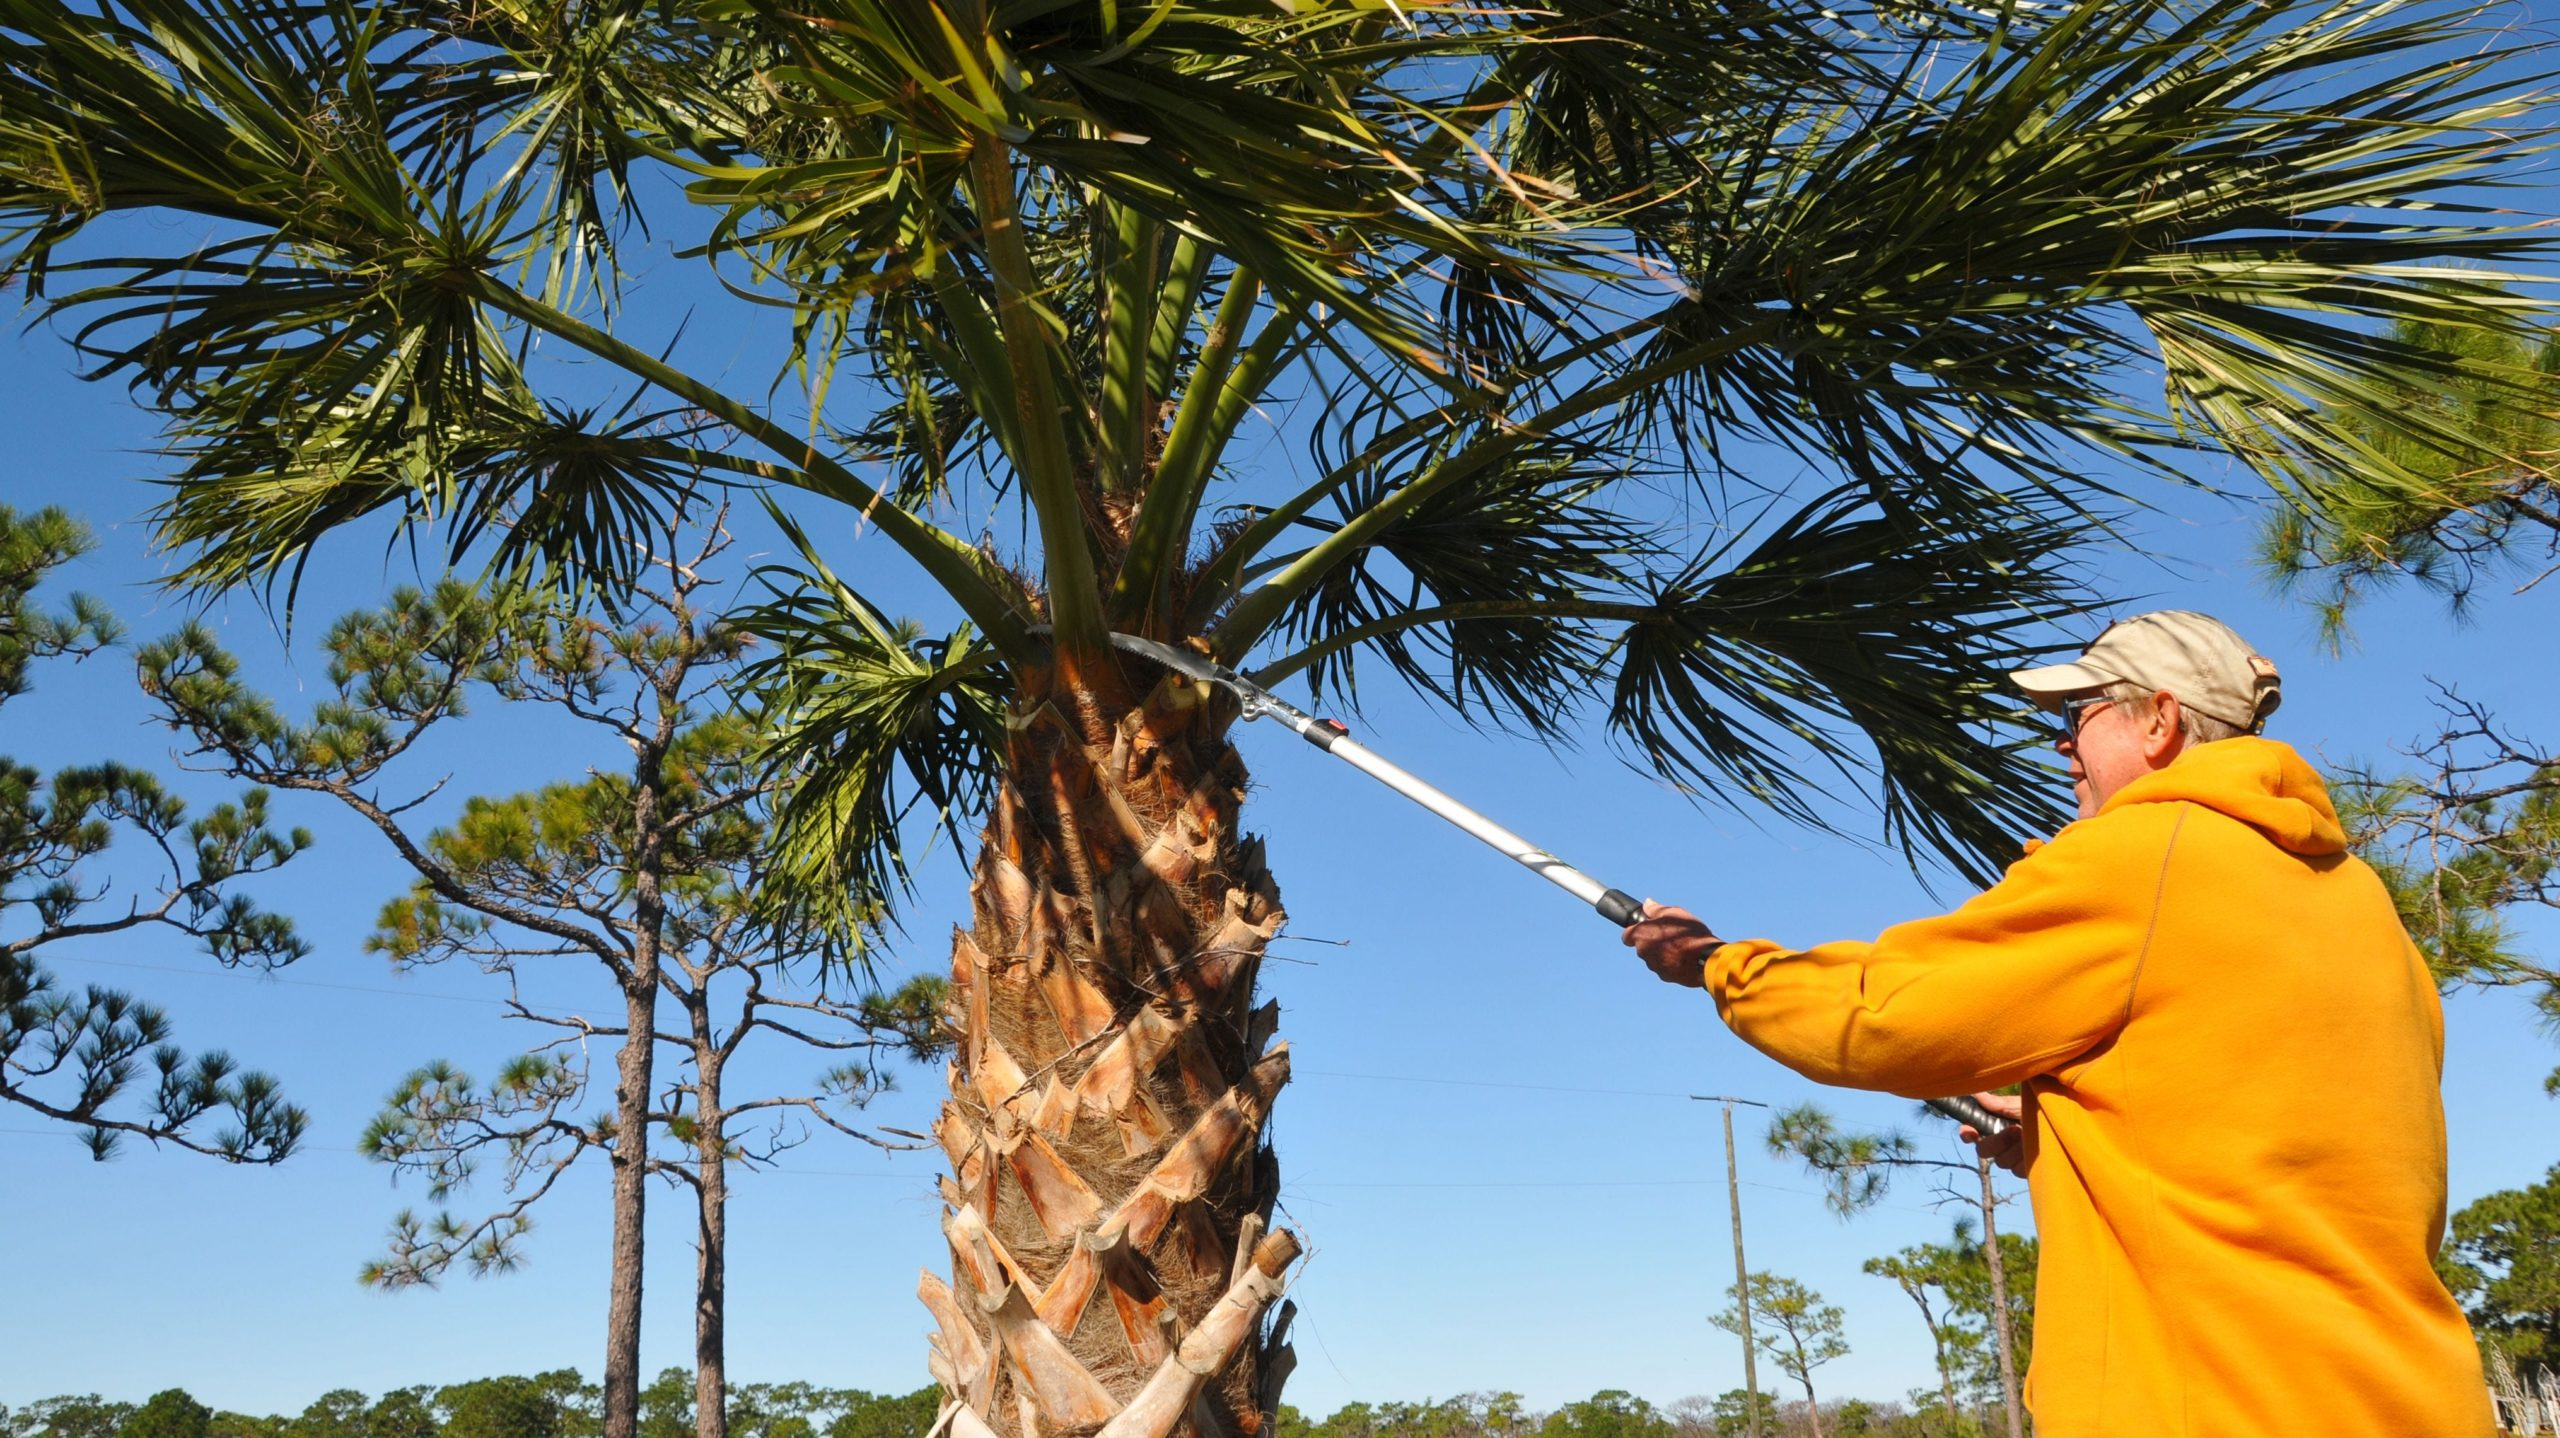 How Much Does Palm Tree Trimming Cost-Palm Beach County Tree Trimming and Tree Removal Services-We Offer Tree Trimming Services, Tree Removal, Tree Pruning, Tree Cutting, Residential and Commercial Tree Trimming Services, Storm Damage, Emergency Tree Removal, Land Clearing, Tree Companies, Tree Care Service, Stump Grinding, and we're the Best Tree Trimming Company Near You Guaranteed!